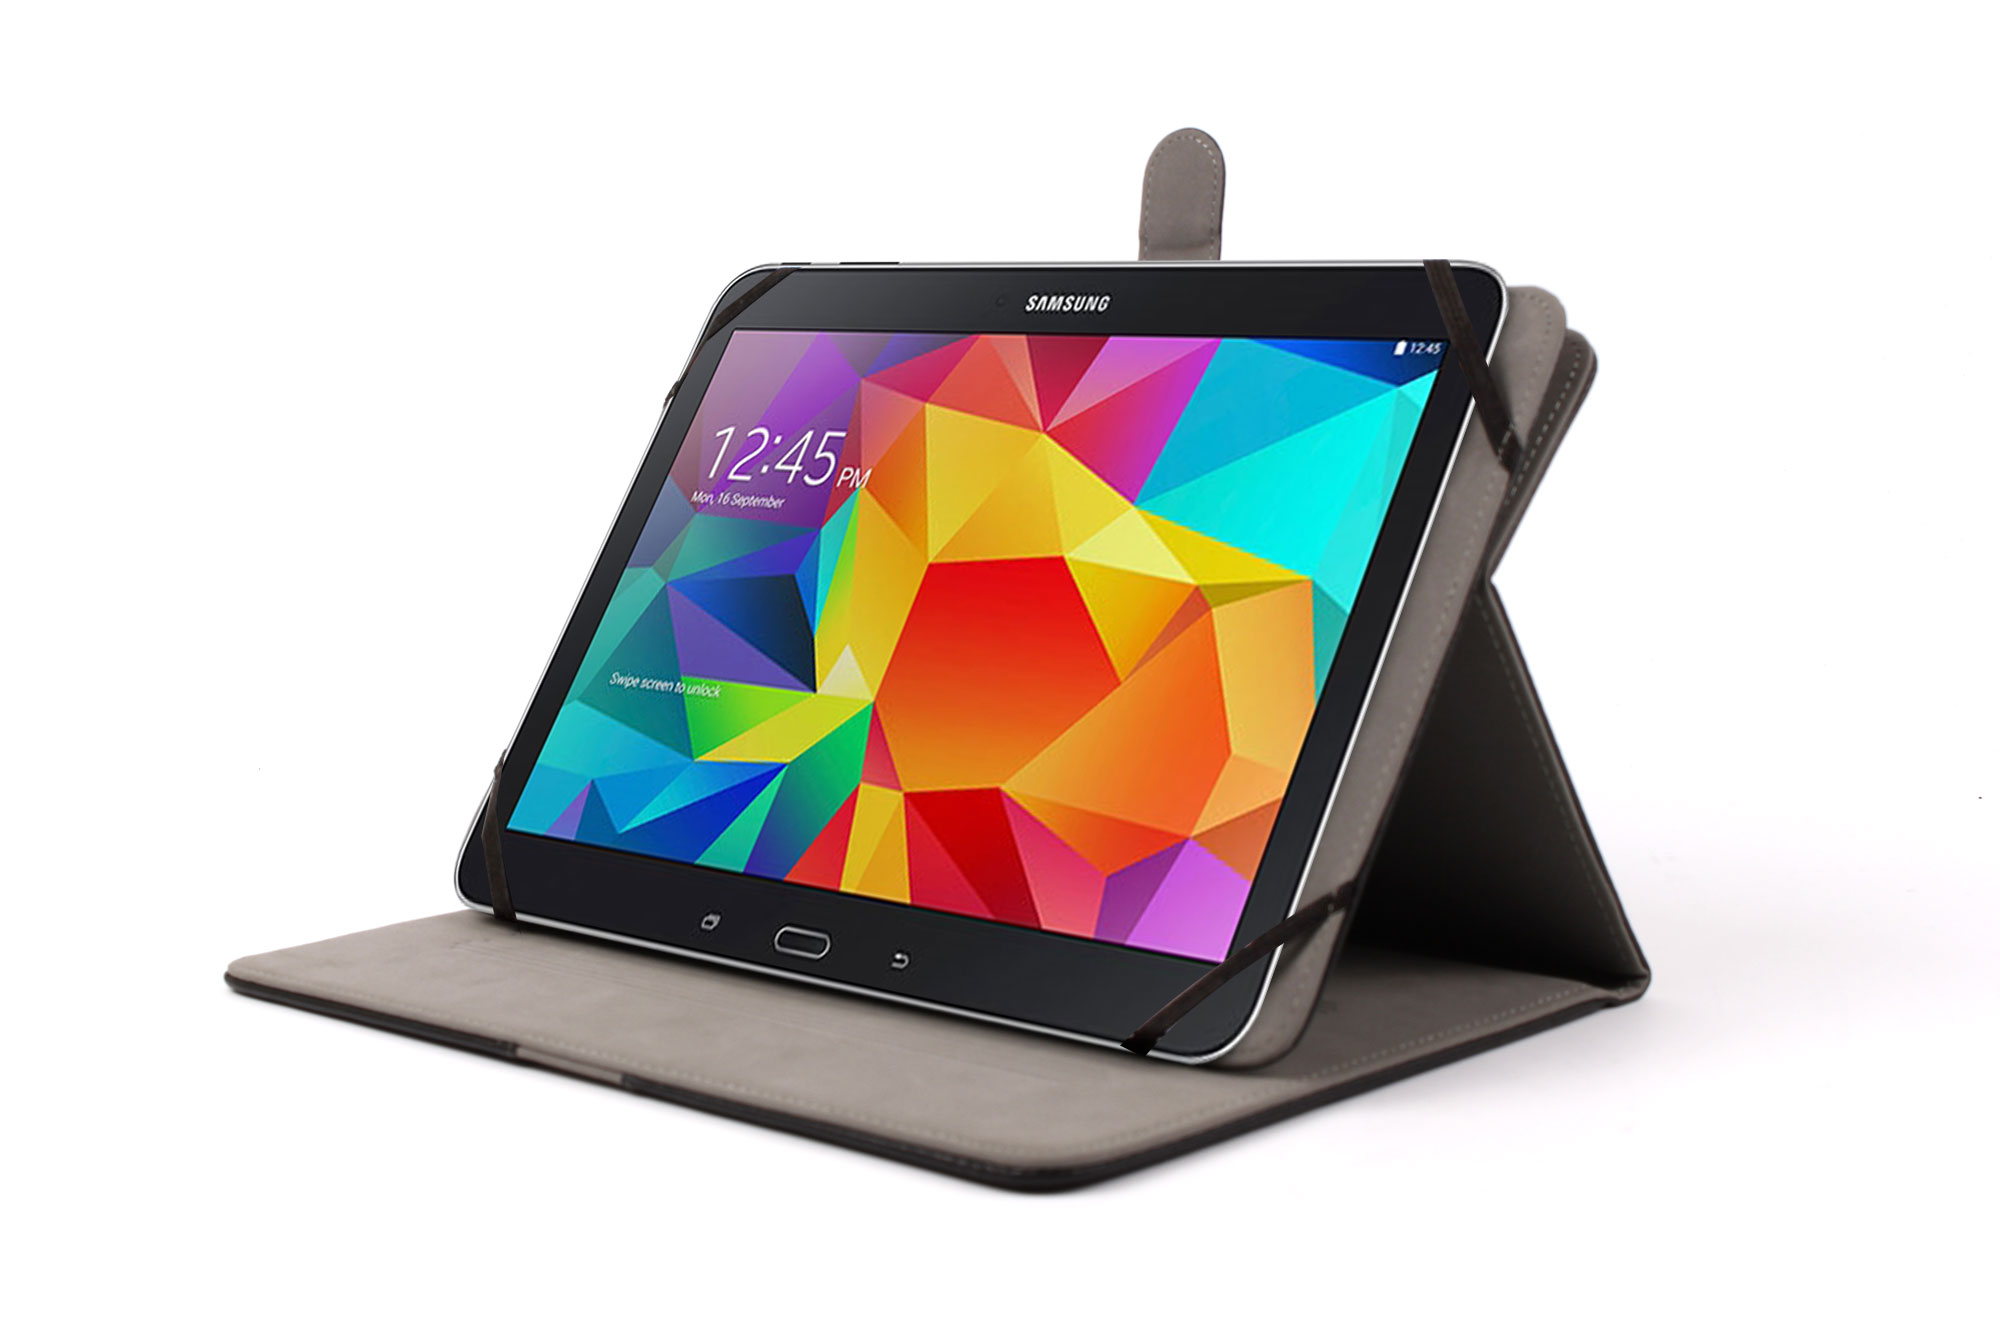 housse rotative 360 pour tablette samsung galaxy tab 4 10 1 t530 t531 t535 t533 ebay